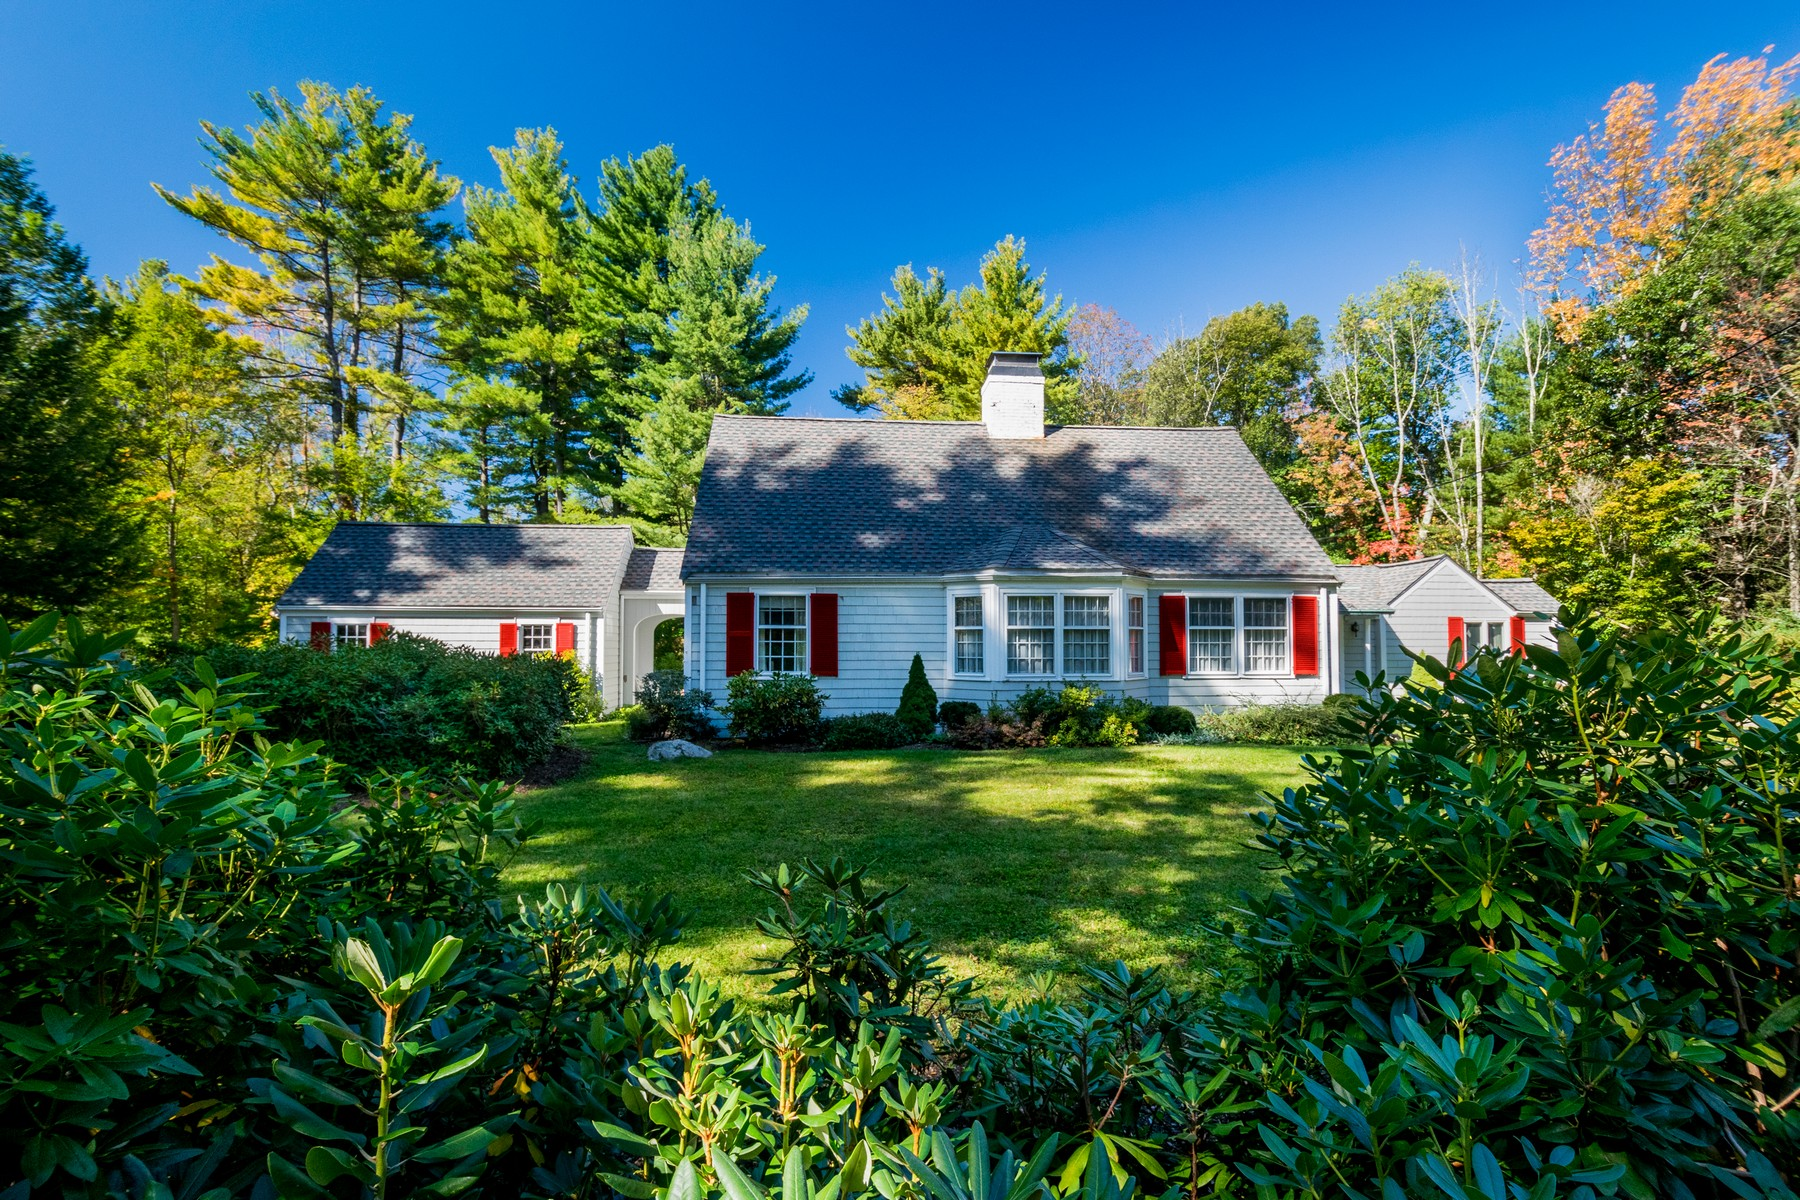 Single Family Home for Sale at Serene Country Setting 34 Old Winter Street Lincoln, Massachusetts 01773 United States